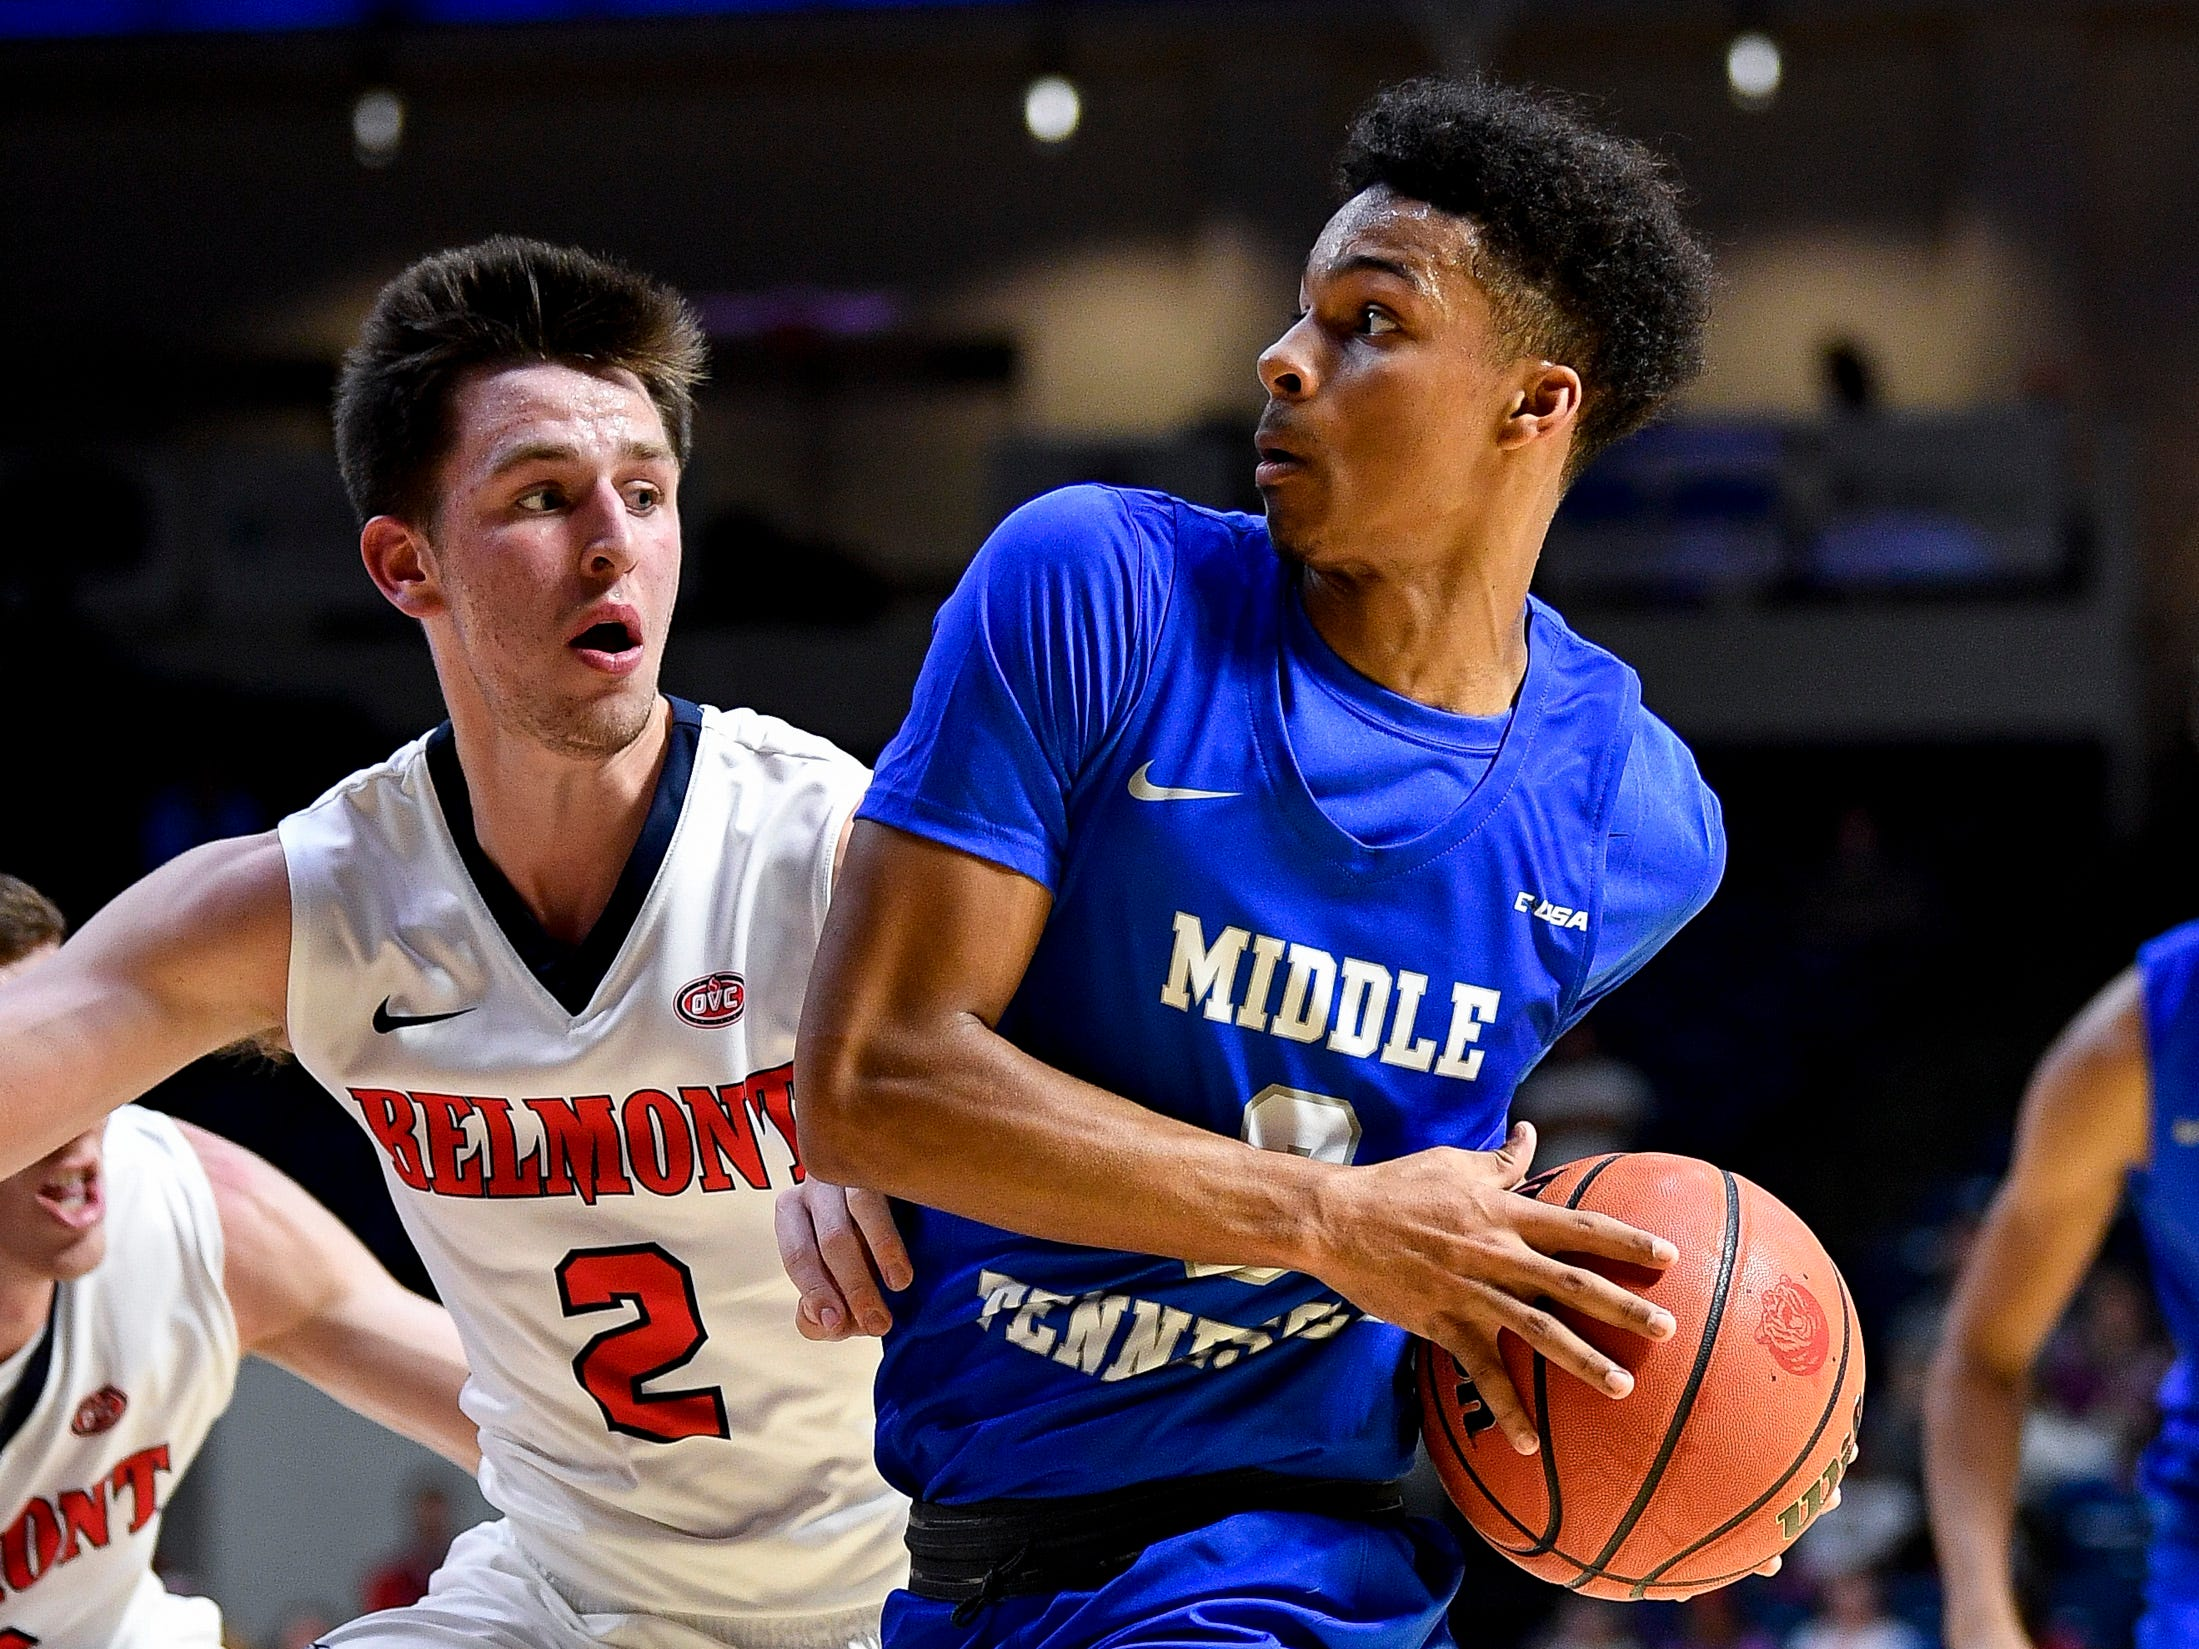 MTSU guard Donovan Sims (3) advances past Belmont guard Grayson Murphy (2) during the first half at the Curb Event Center Arena in Nashville, Tenn., Monday, Nov. 12, 2018.